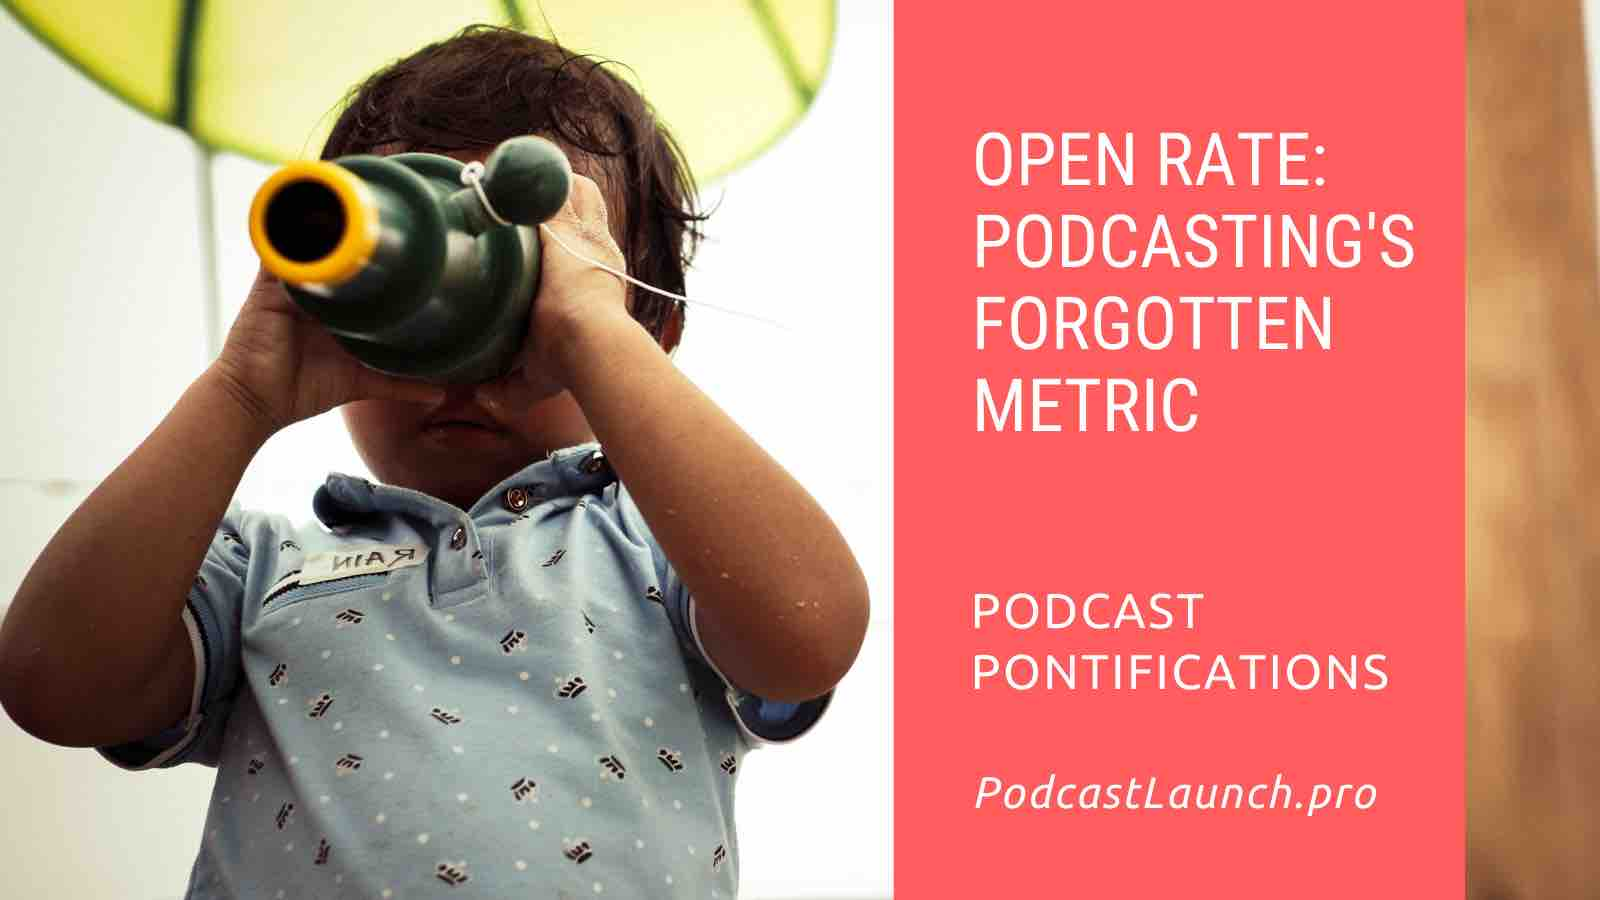 Open Rate: Podcasting's Forgotten Metric